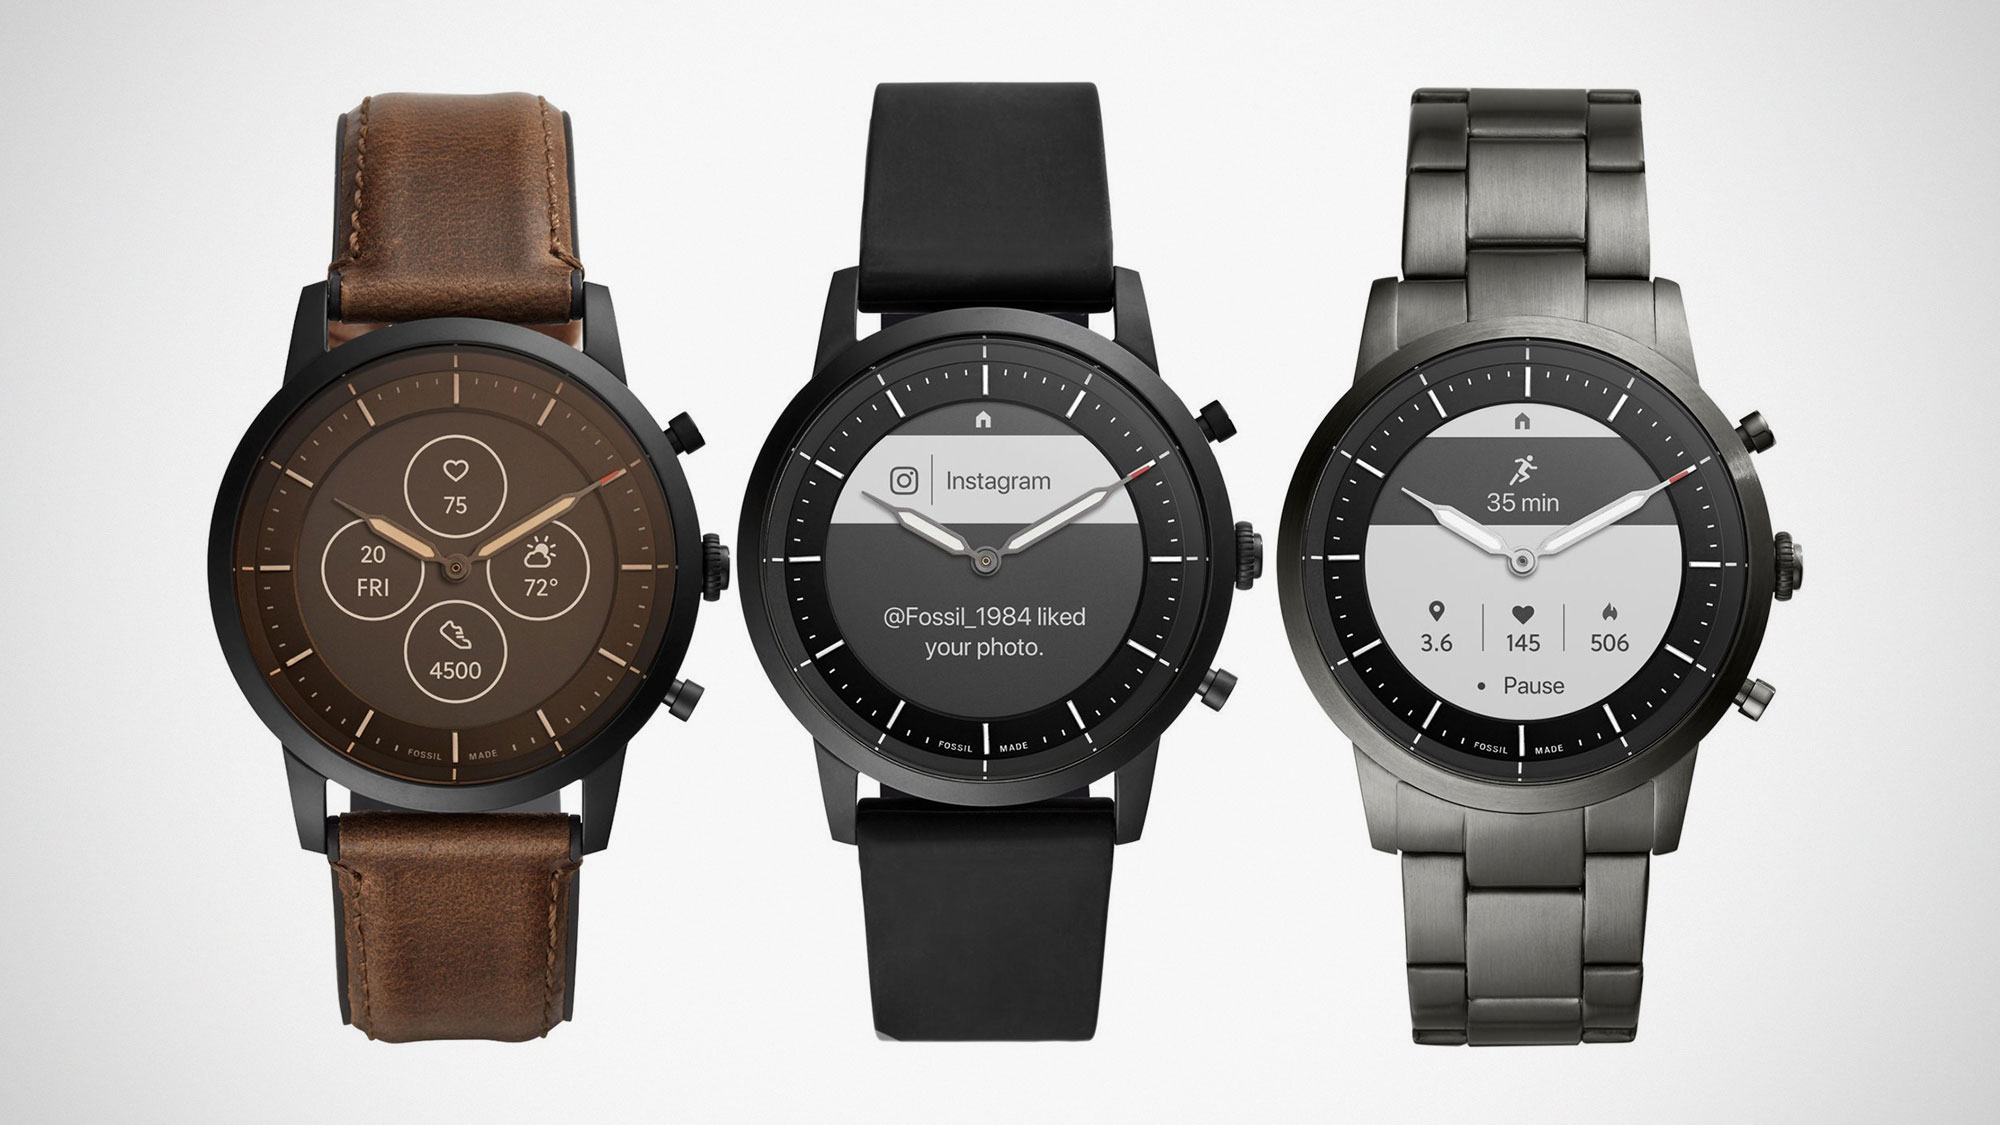 Fossil Collider DIANA Smartwatch Might Be Running On Wear ...